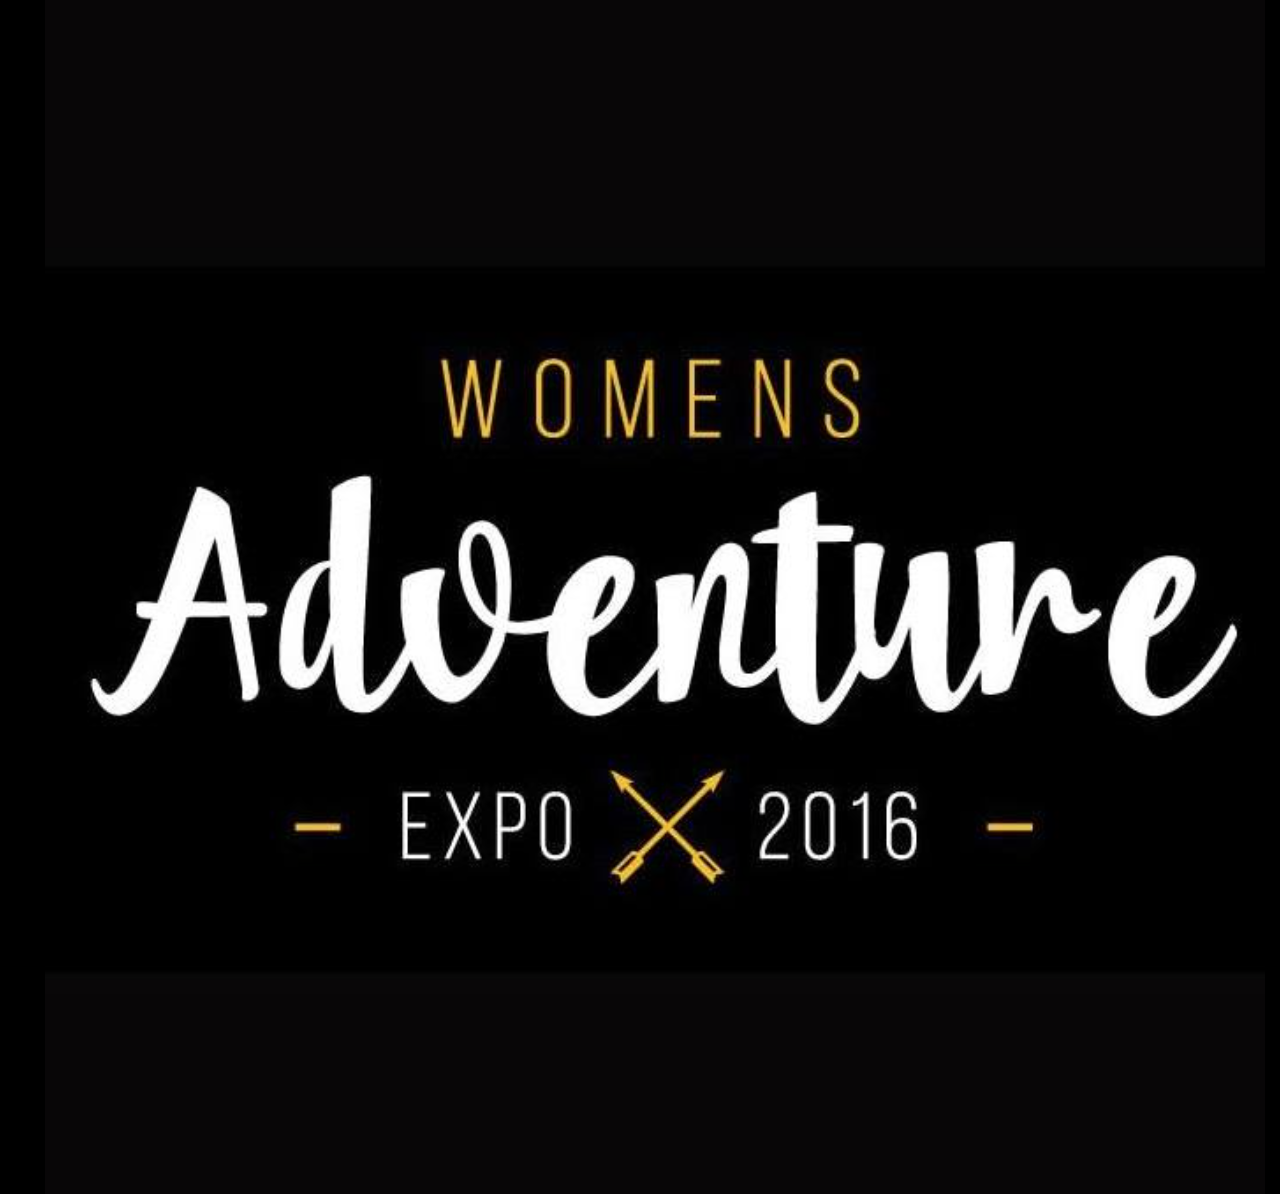 Women's Adventure Expo 2016 | What an awesome event!